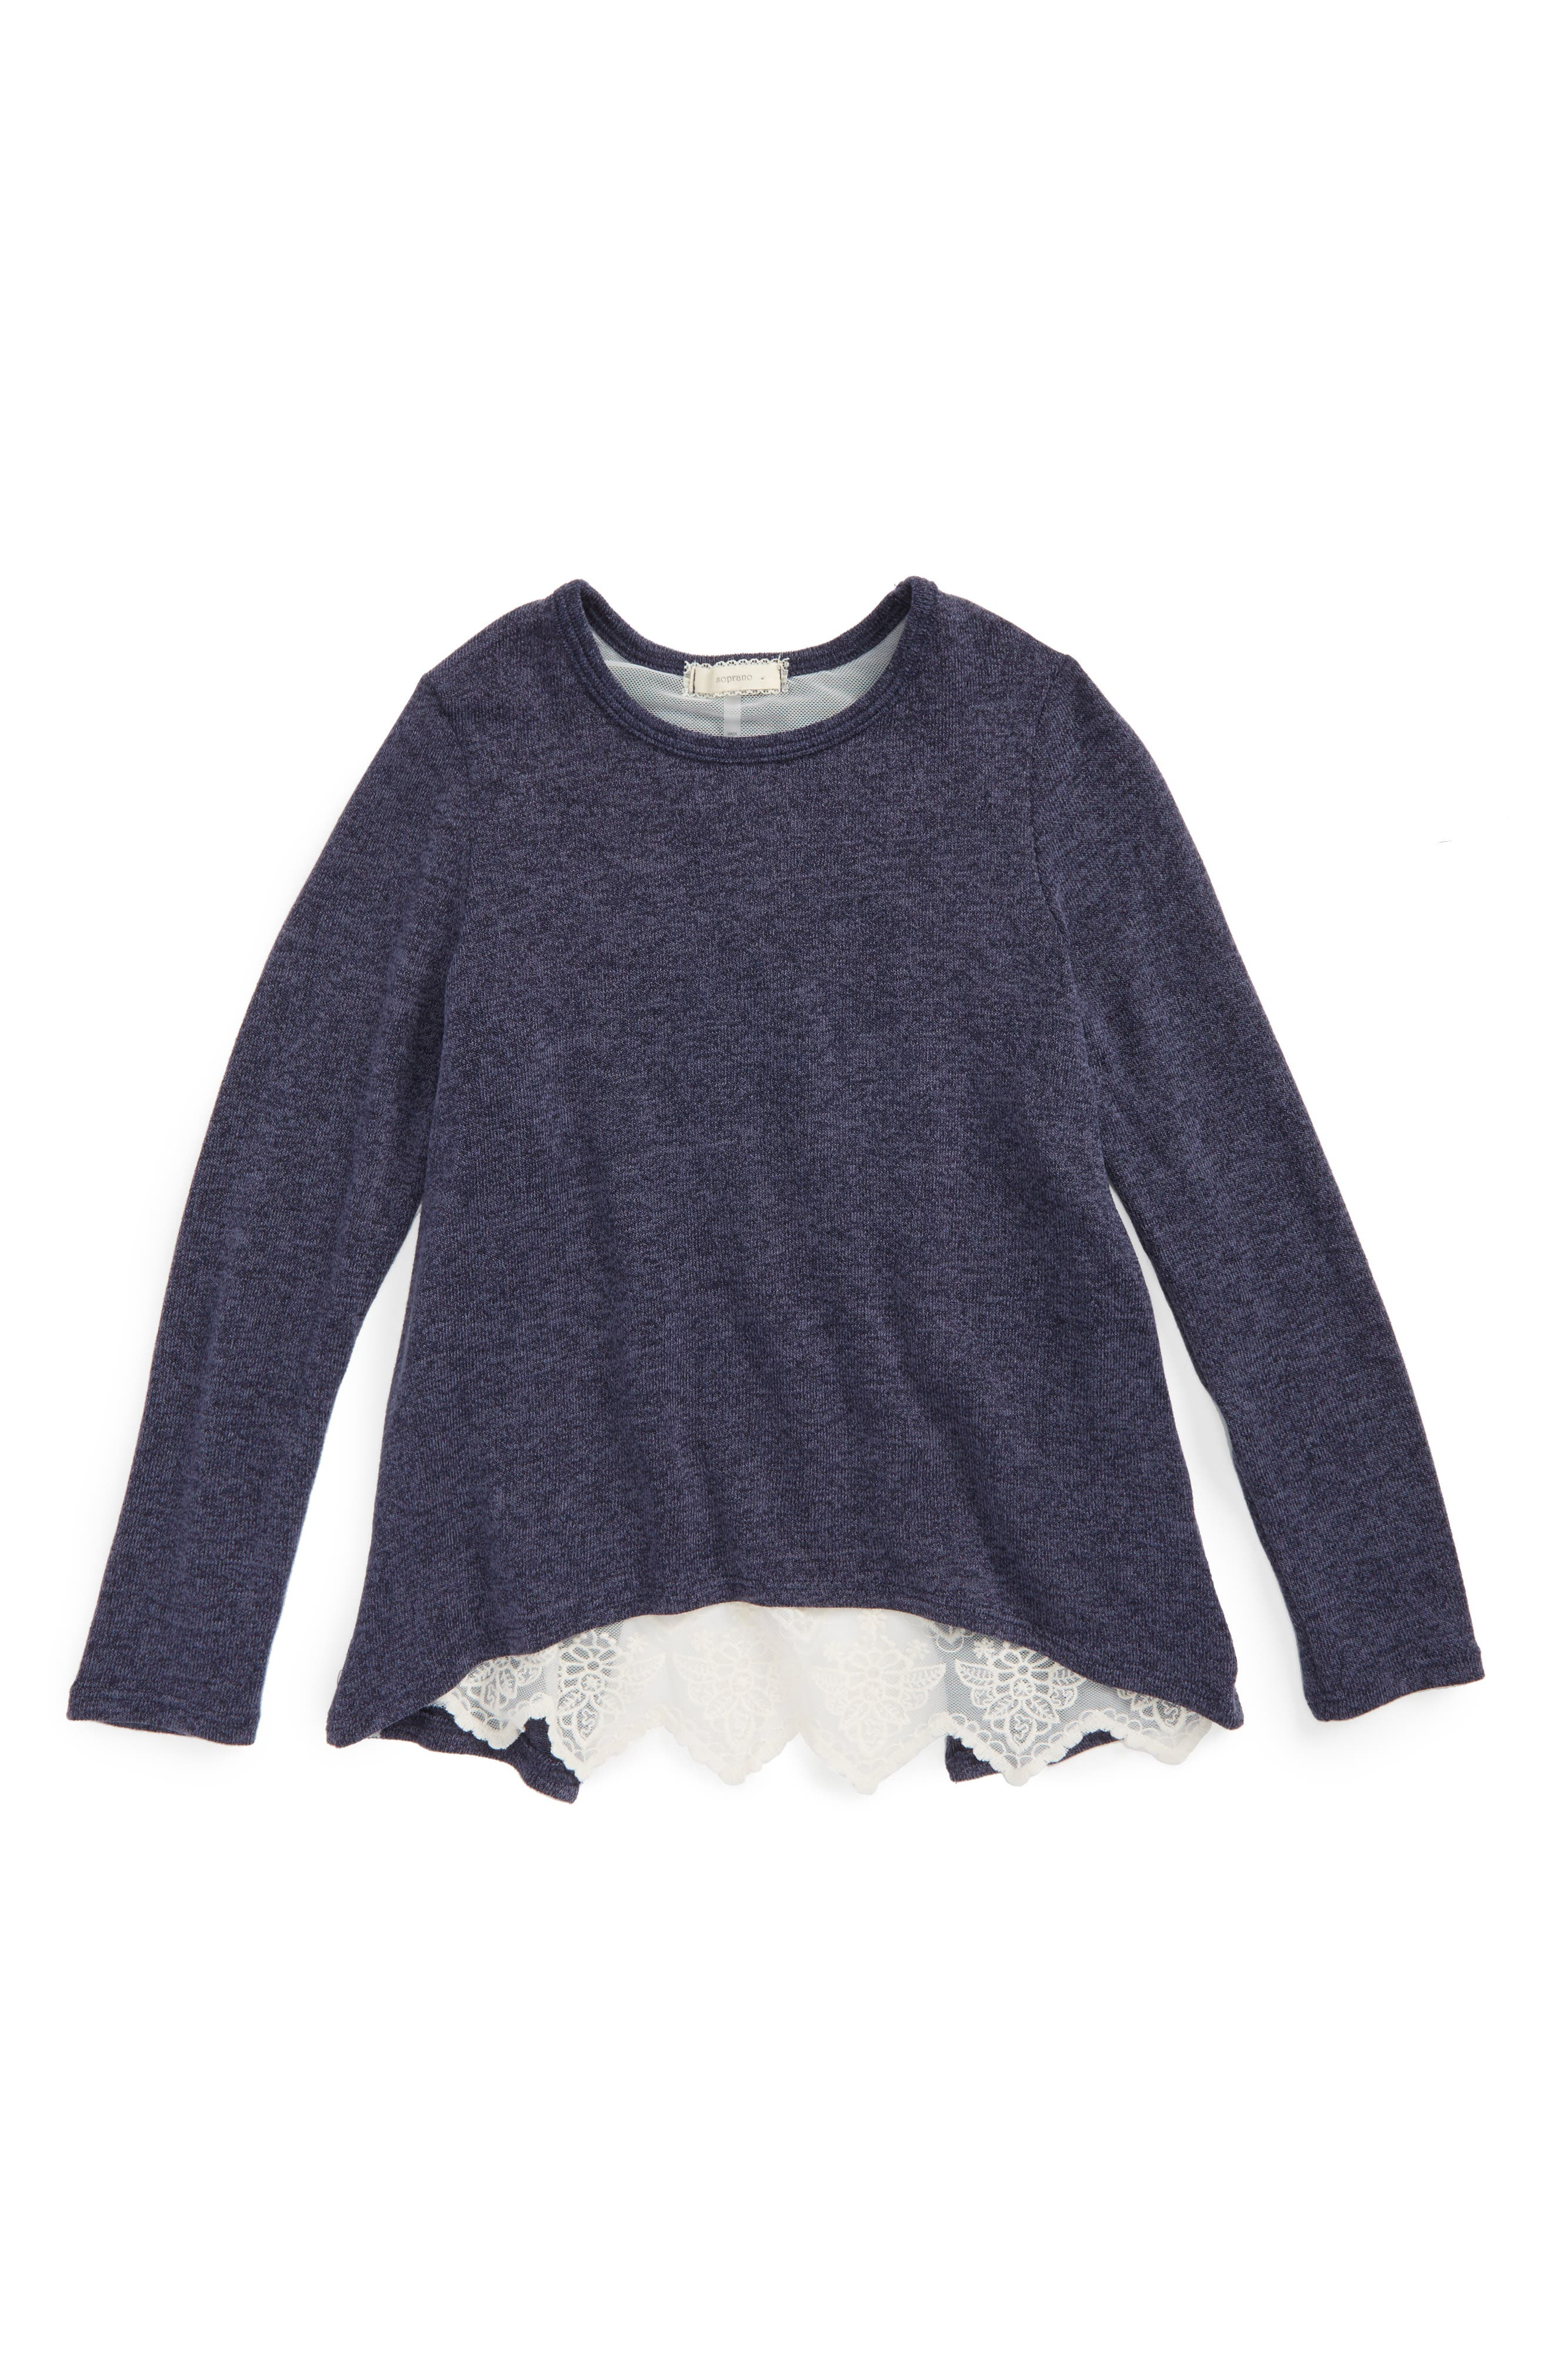 Lace Back Sweater,                             Main thumbnail 1, color,                             405